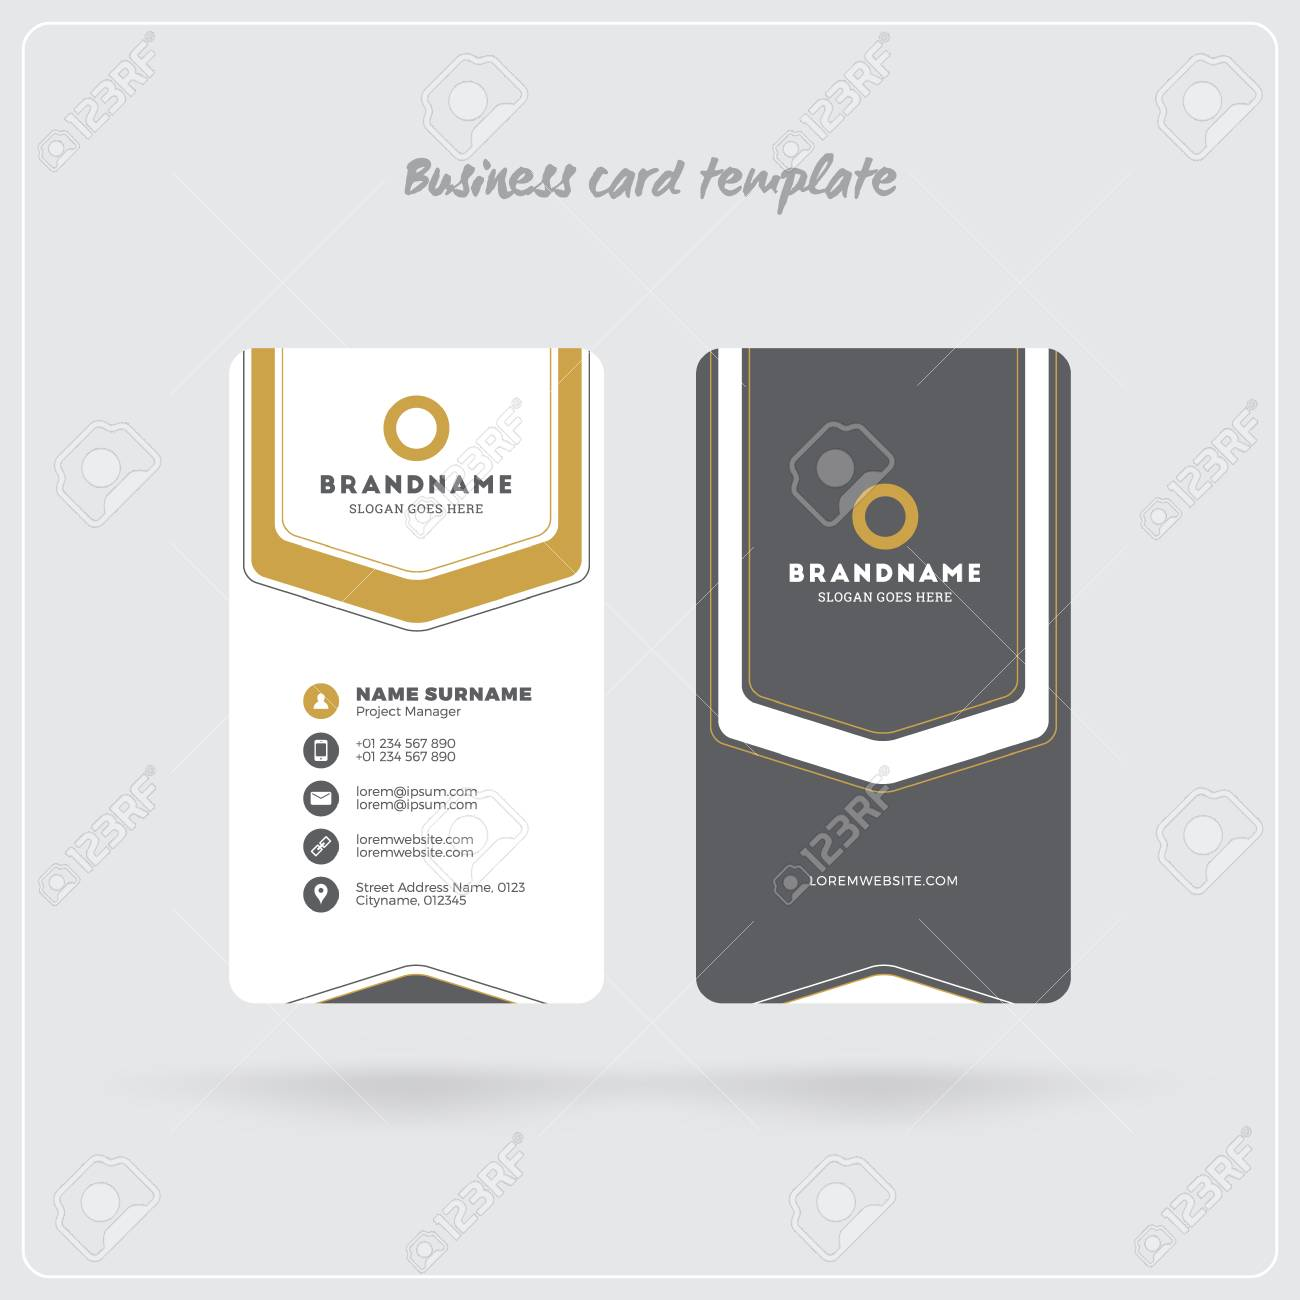 Golden and gray vertical business card print template double sided golden and gray vertical business card print template double sided personal visiting card with friedricerecipe Choice Image